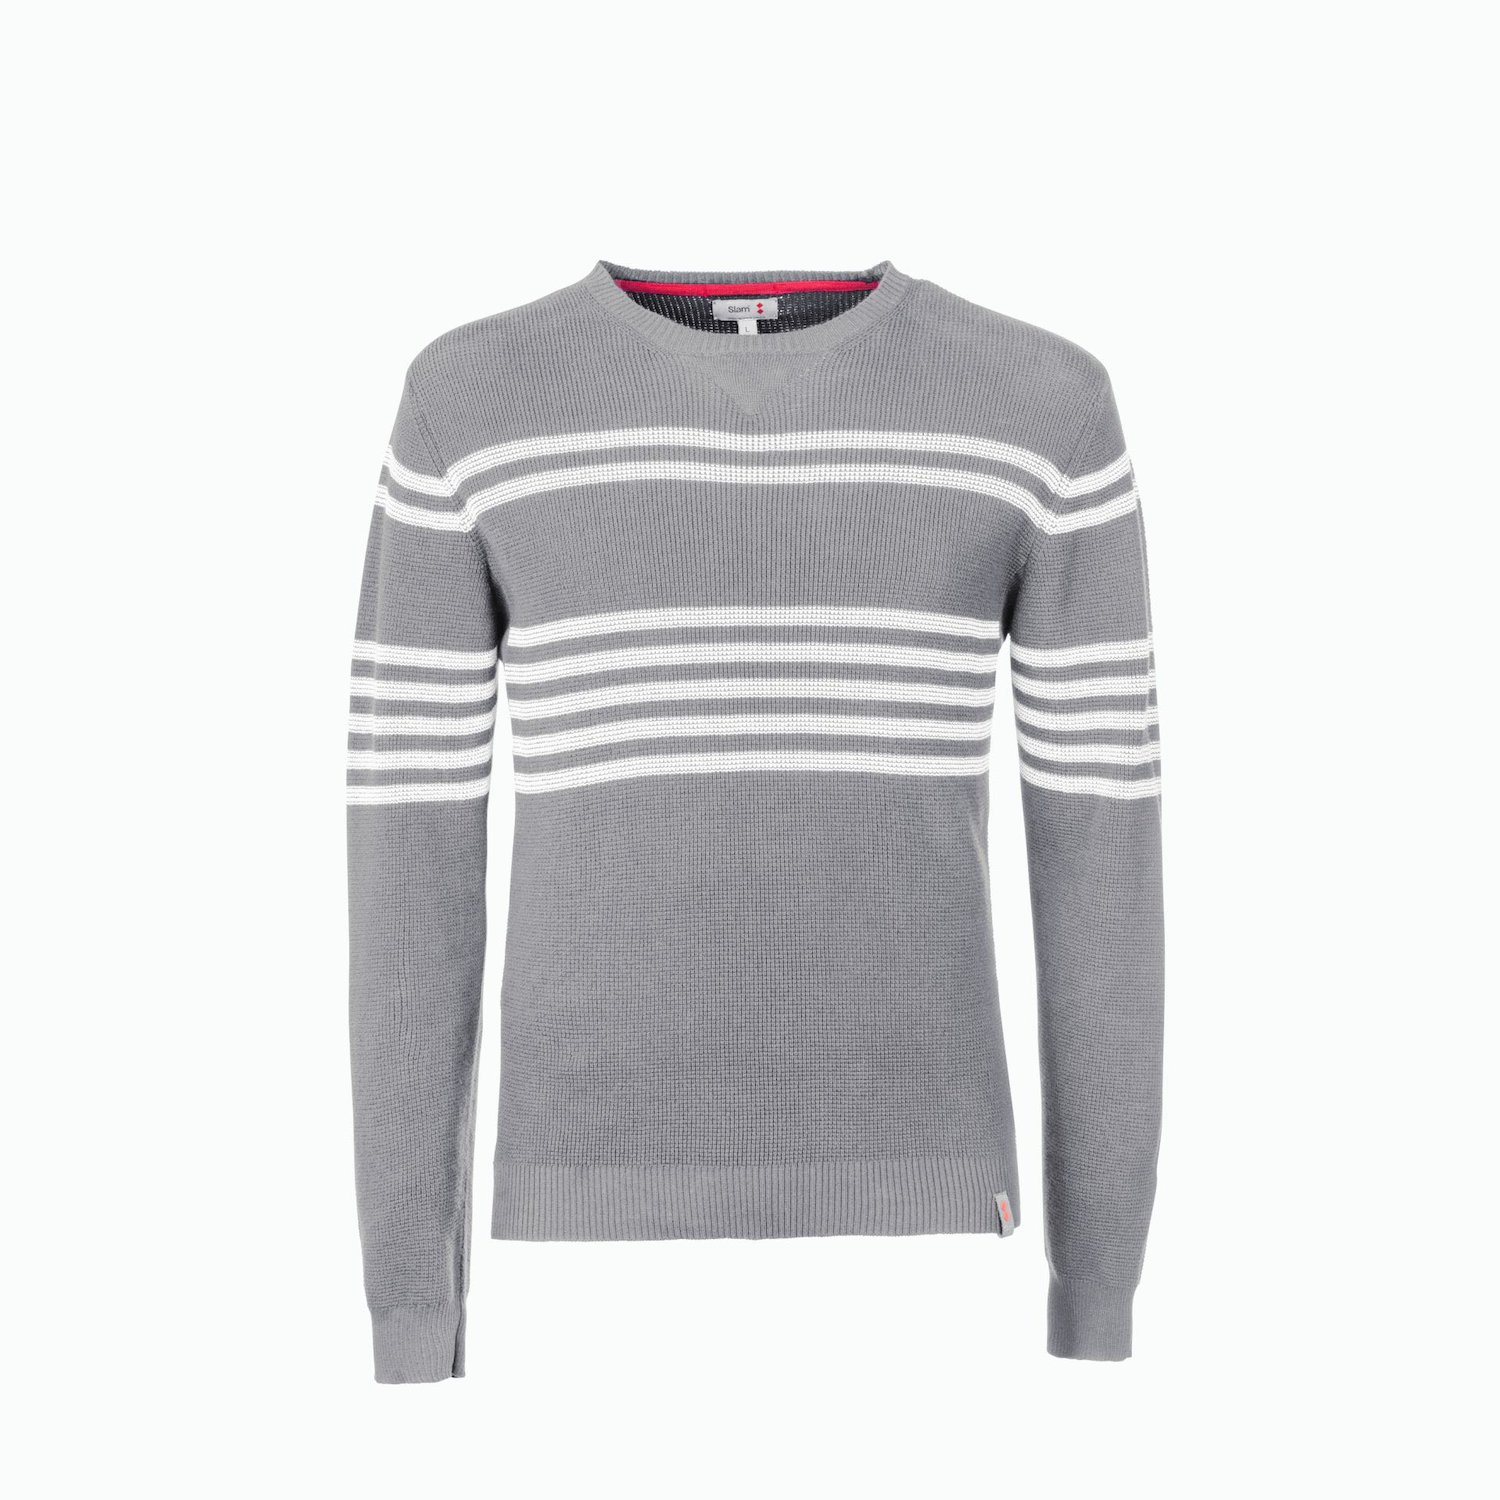 C210 Jumper - Frost Grey